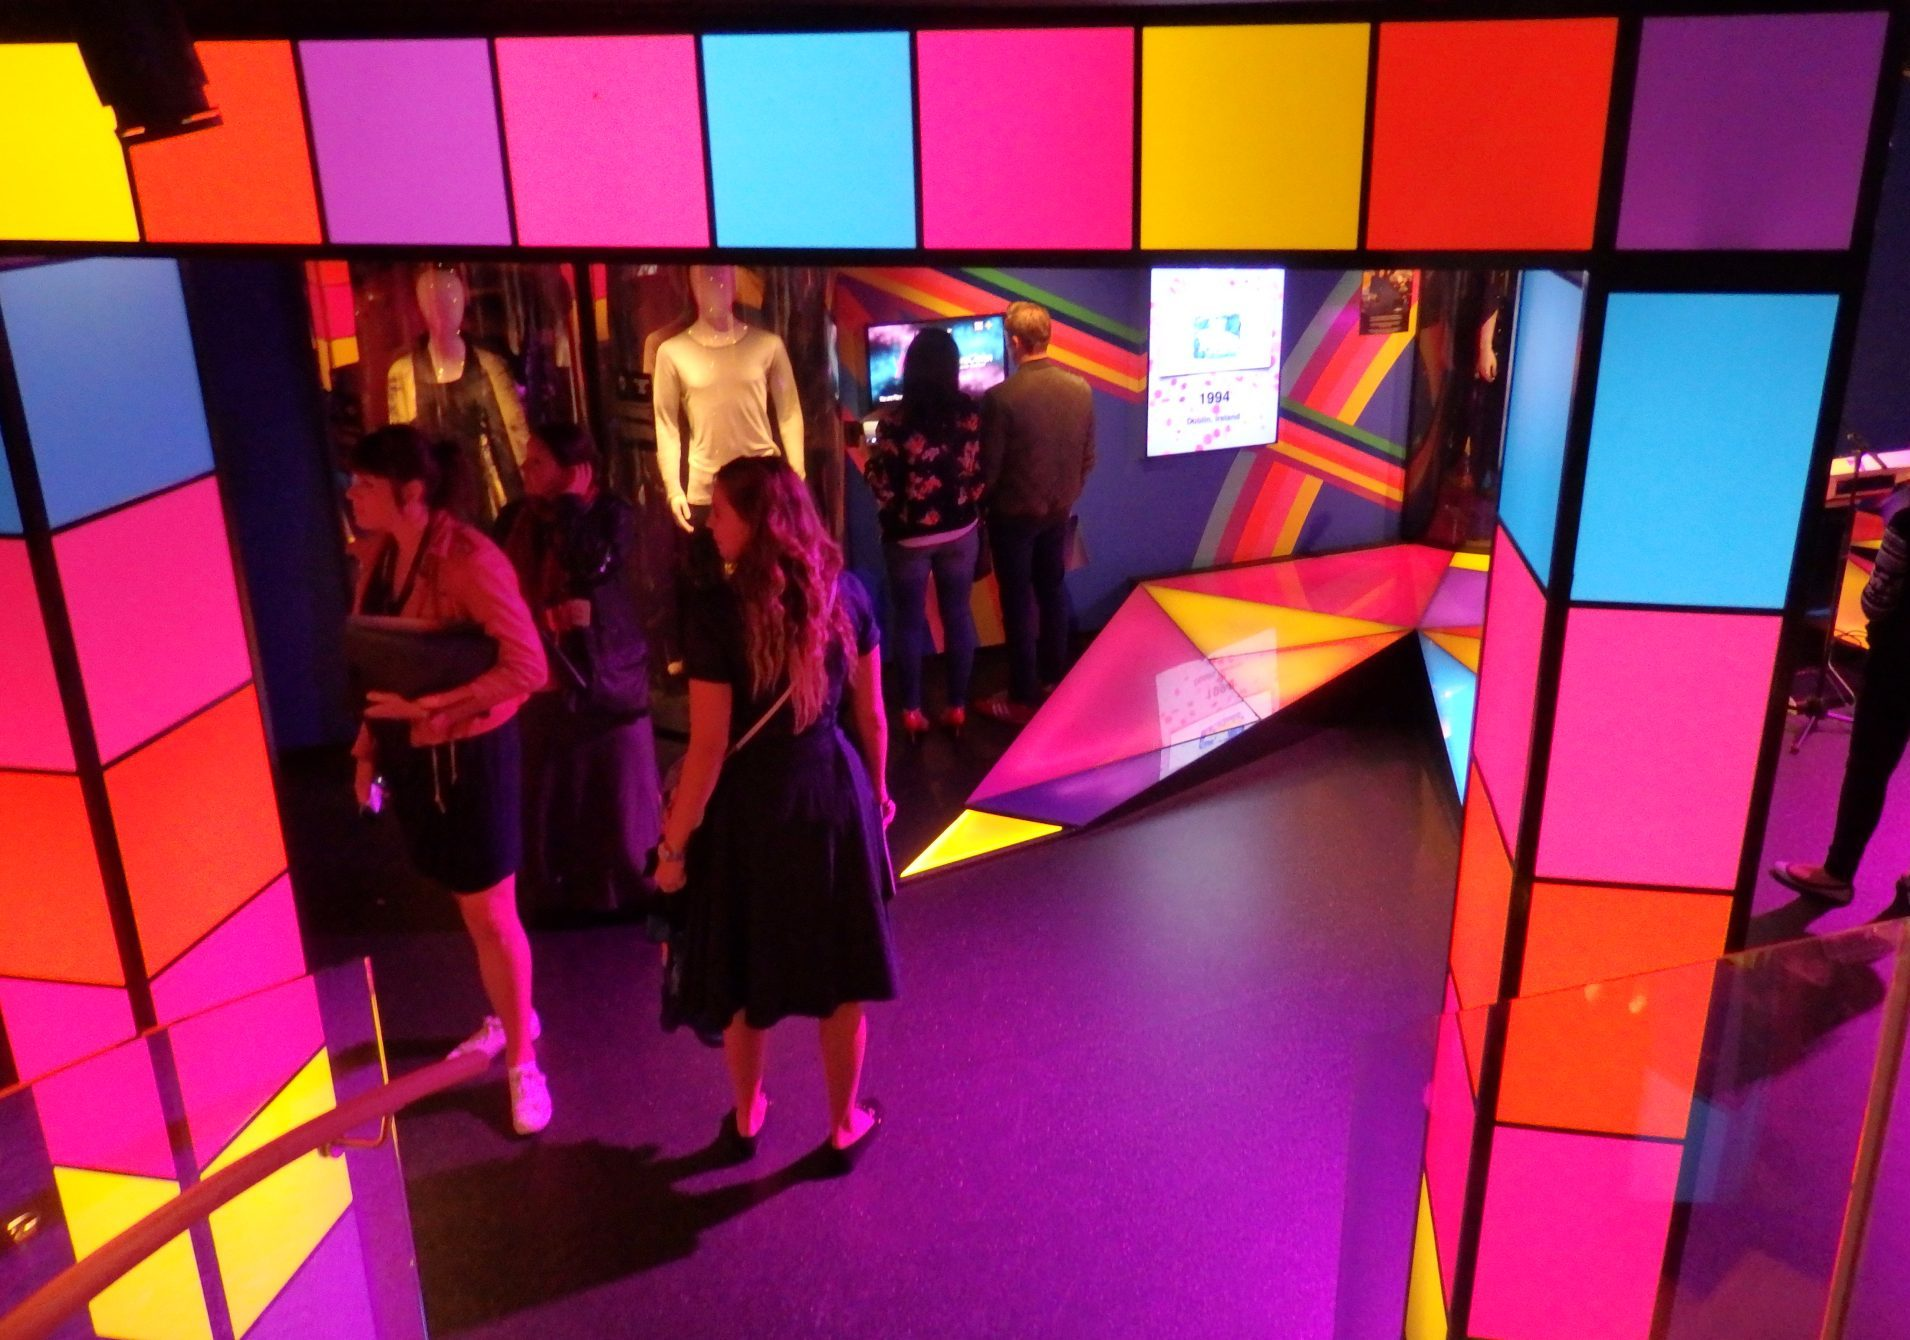 The entrance to ABBA The Museum takes you right to the age of disco.